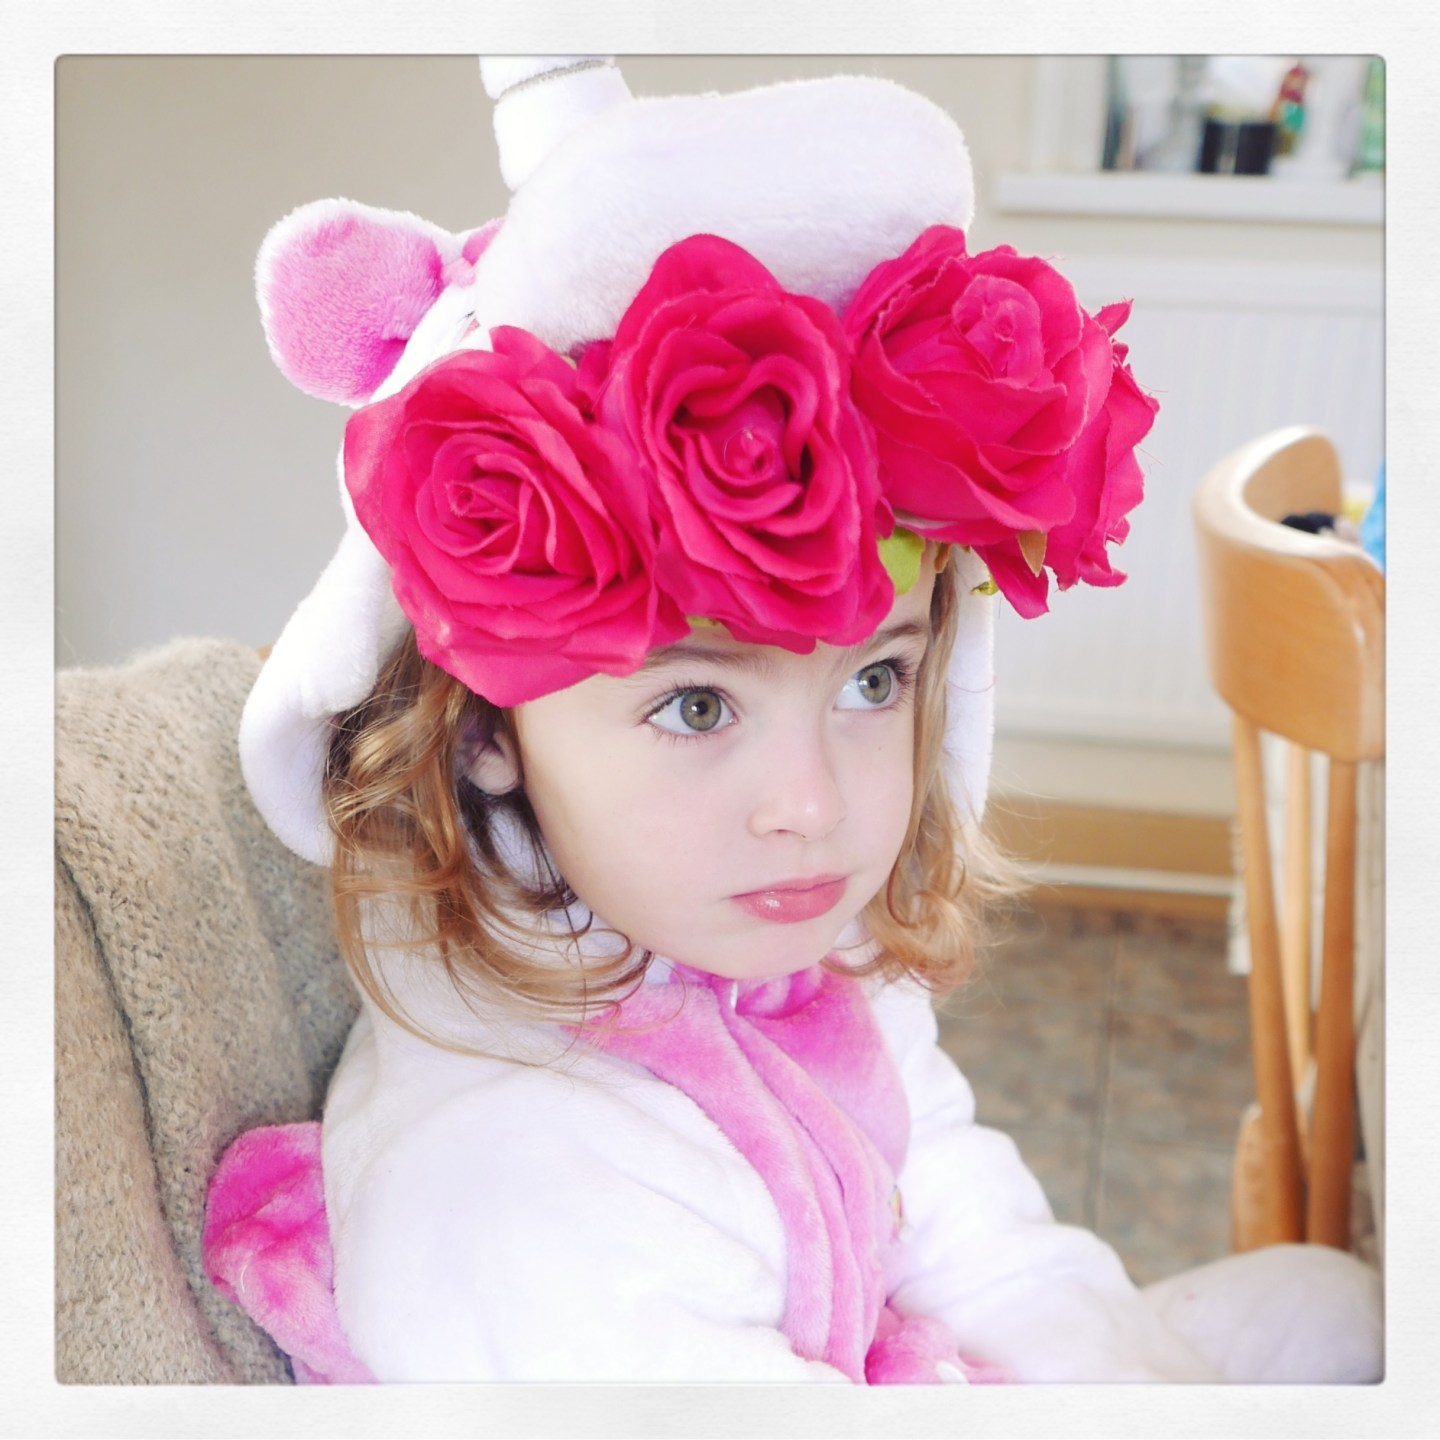 Adorable Unicorn wonderfulness – Poppy style 